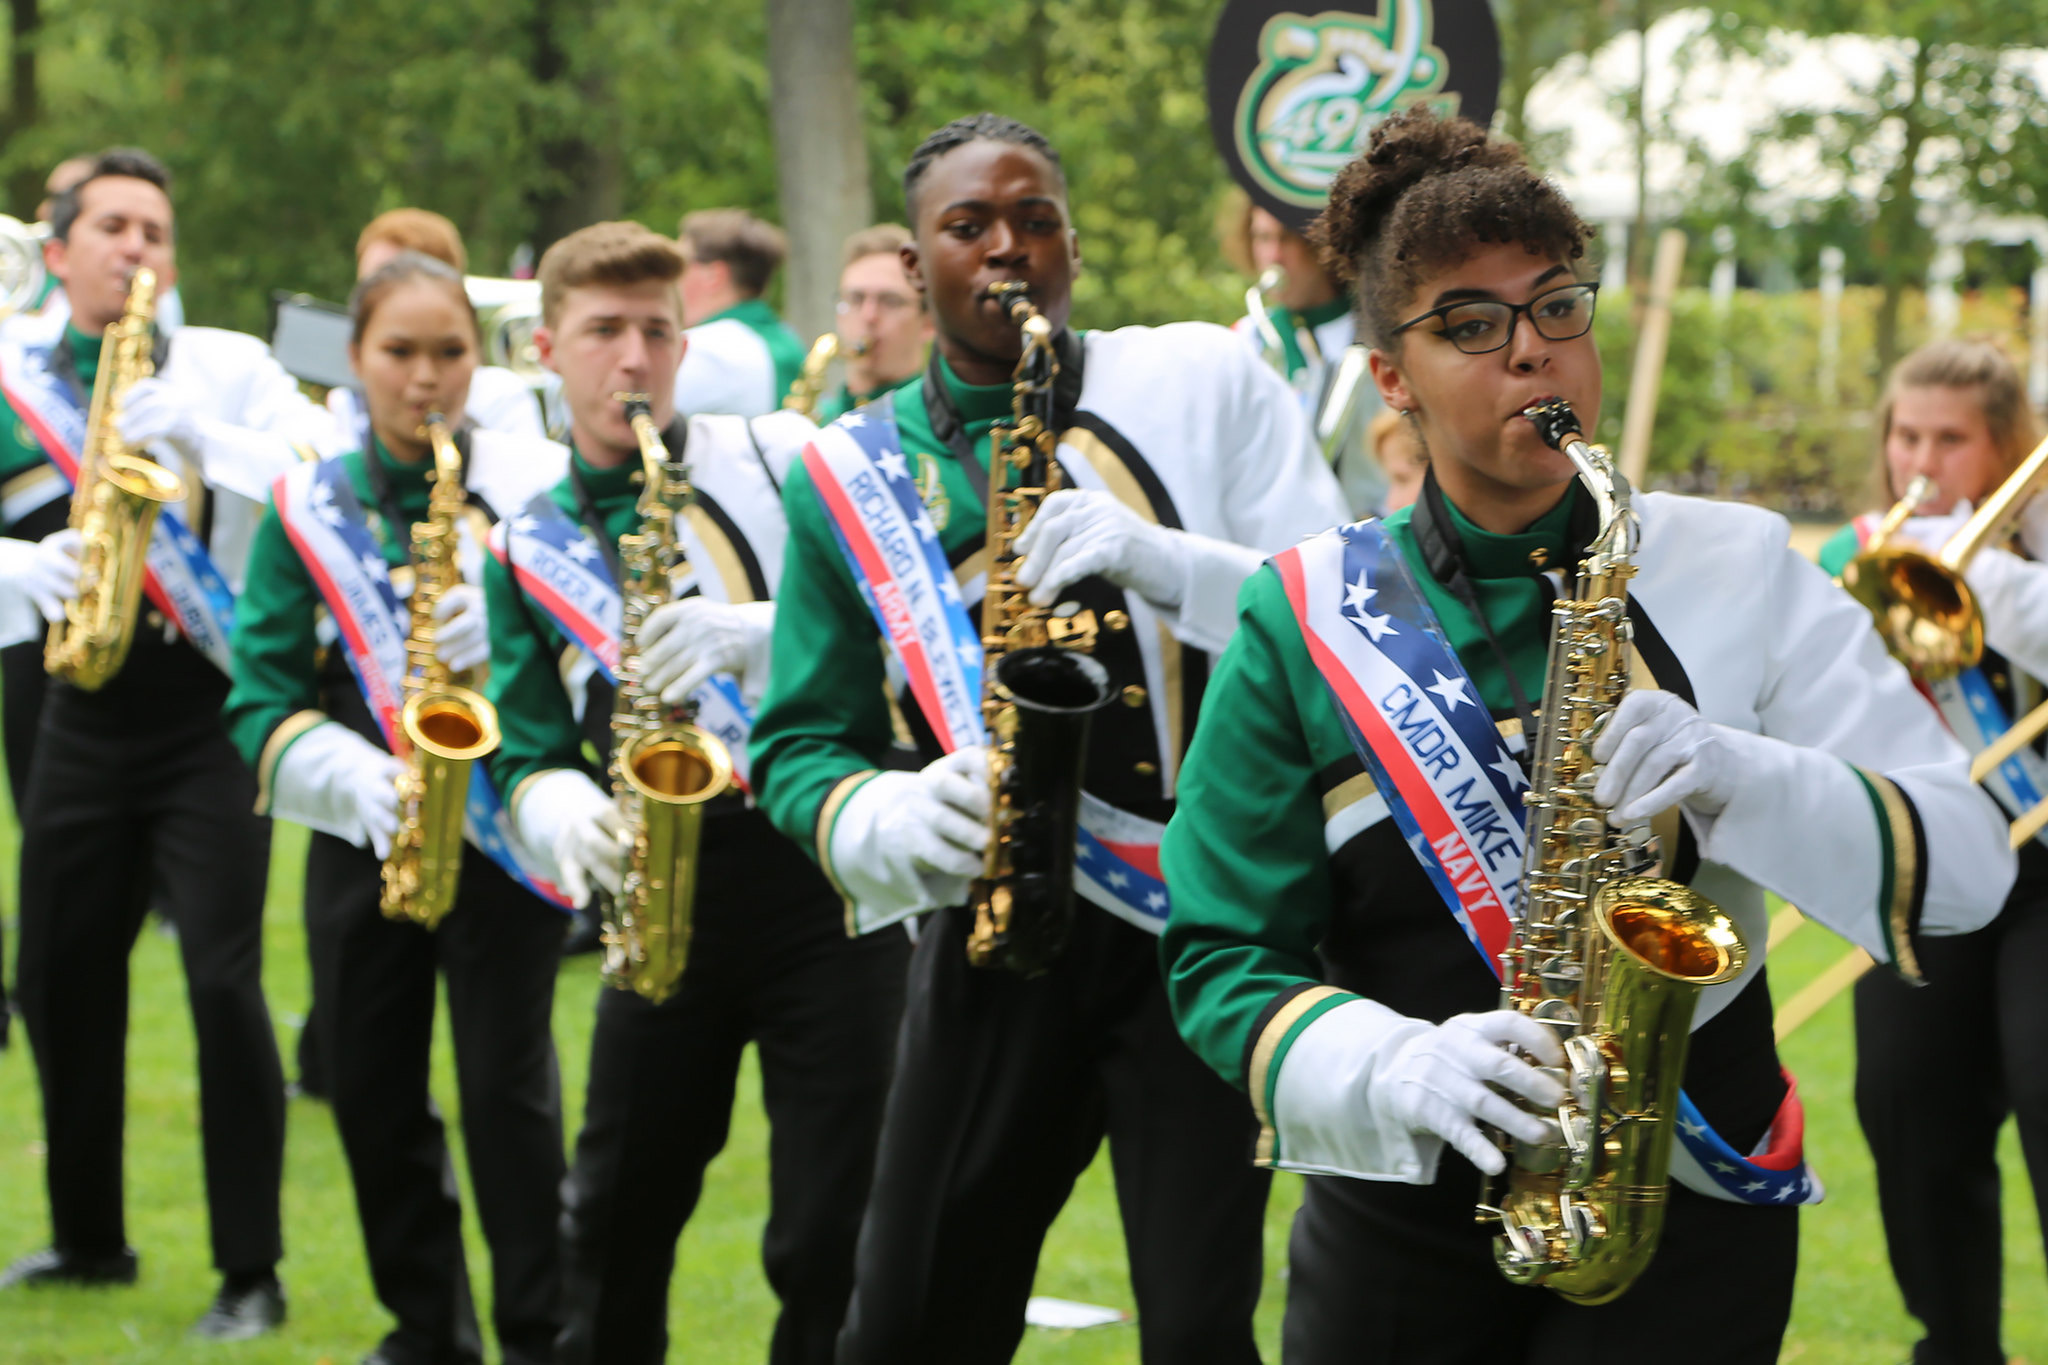 Saxophones in the Jardin d'Acclimatation